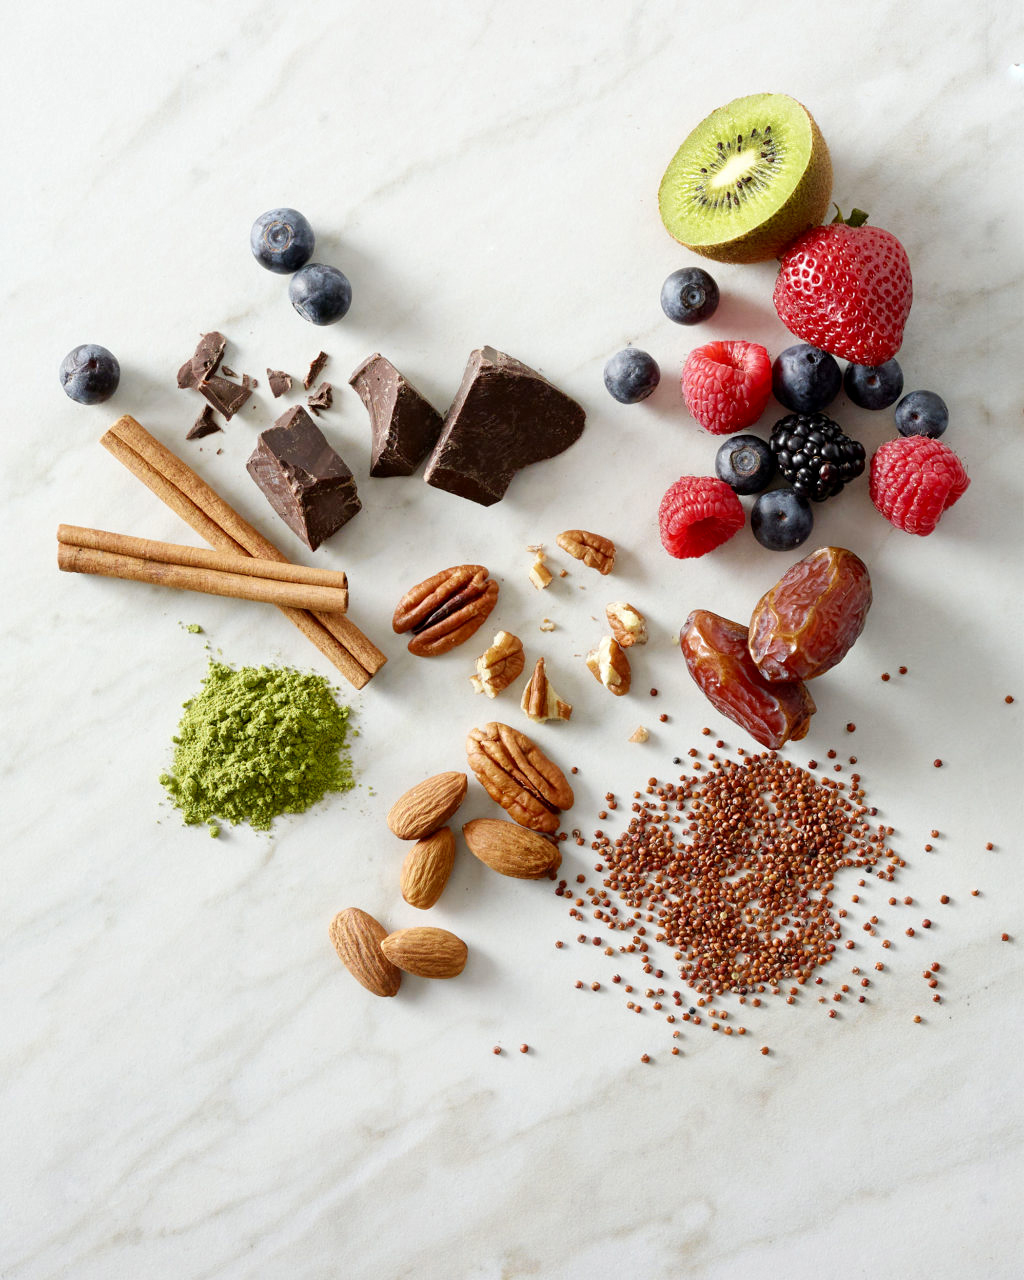 Ingredients - Food Photography by Hollis Conway Photography